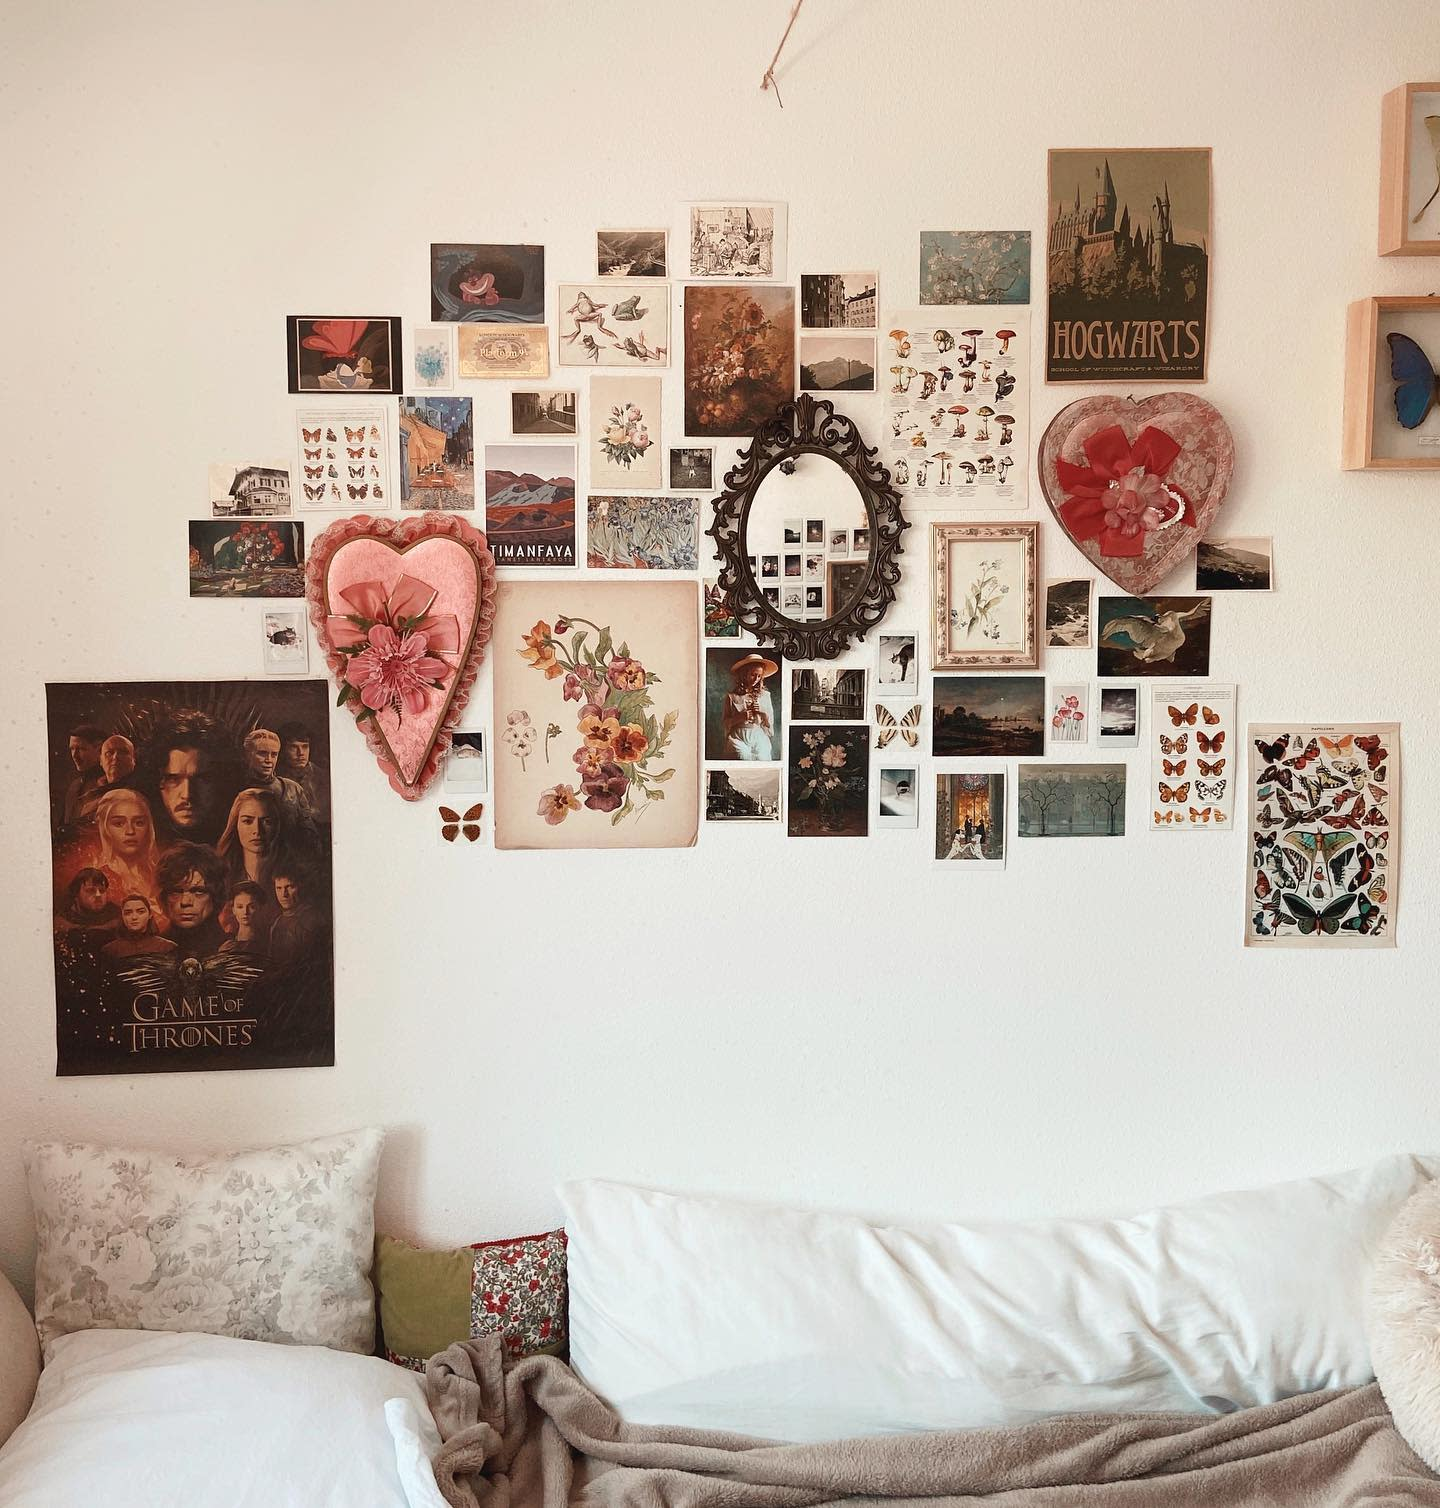 vintage-aesthetic-room-ideas-sunsetsntears